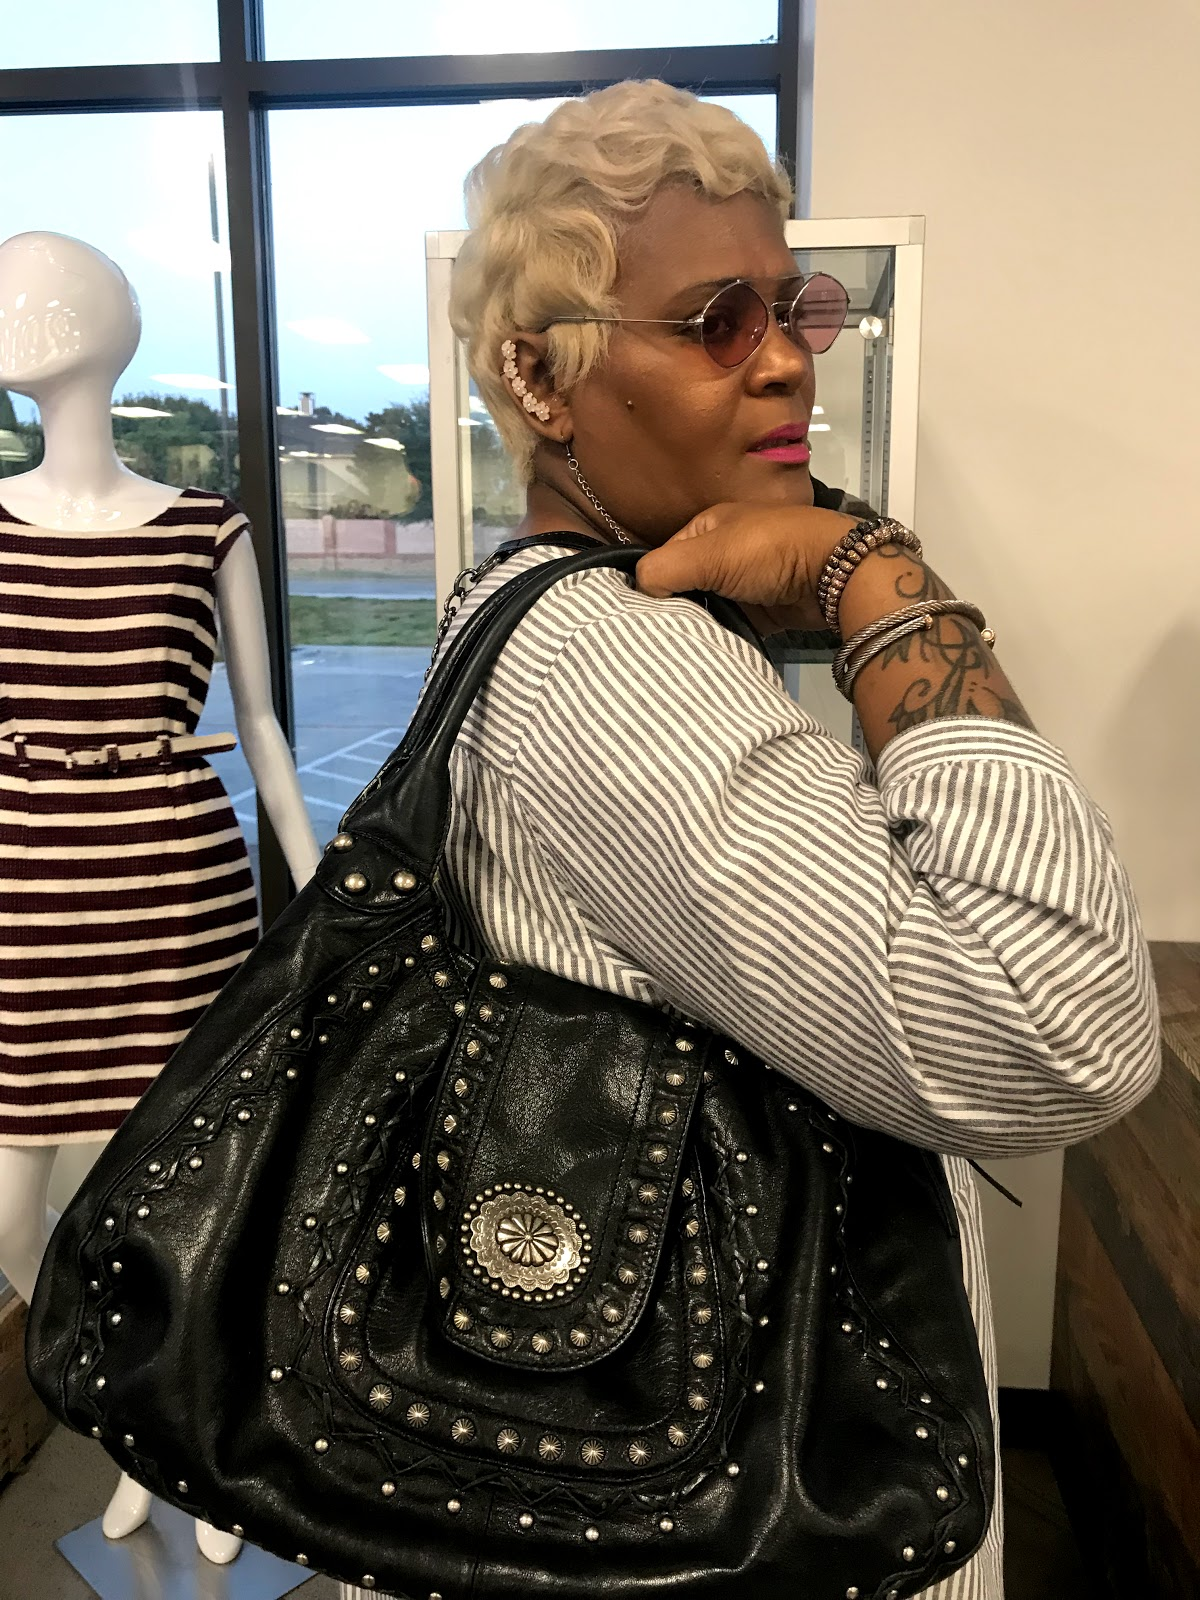 Image: Tangie Bell trying on thrift bucket bag that she found for 3.99. Great sale and finds at Goodwill in Dallas Texas. Looking Good And Used: Everything Was 3.99: Pretty On A Penny